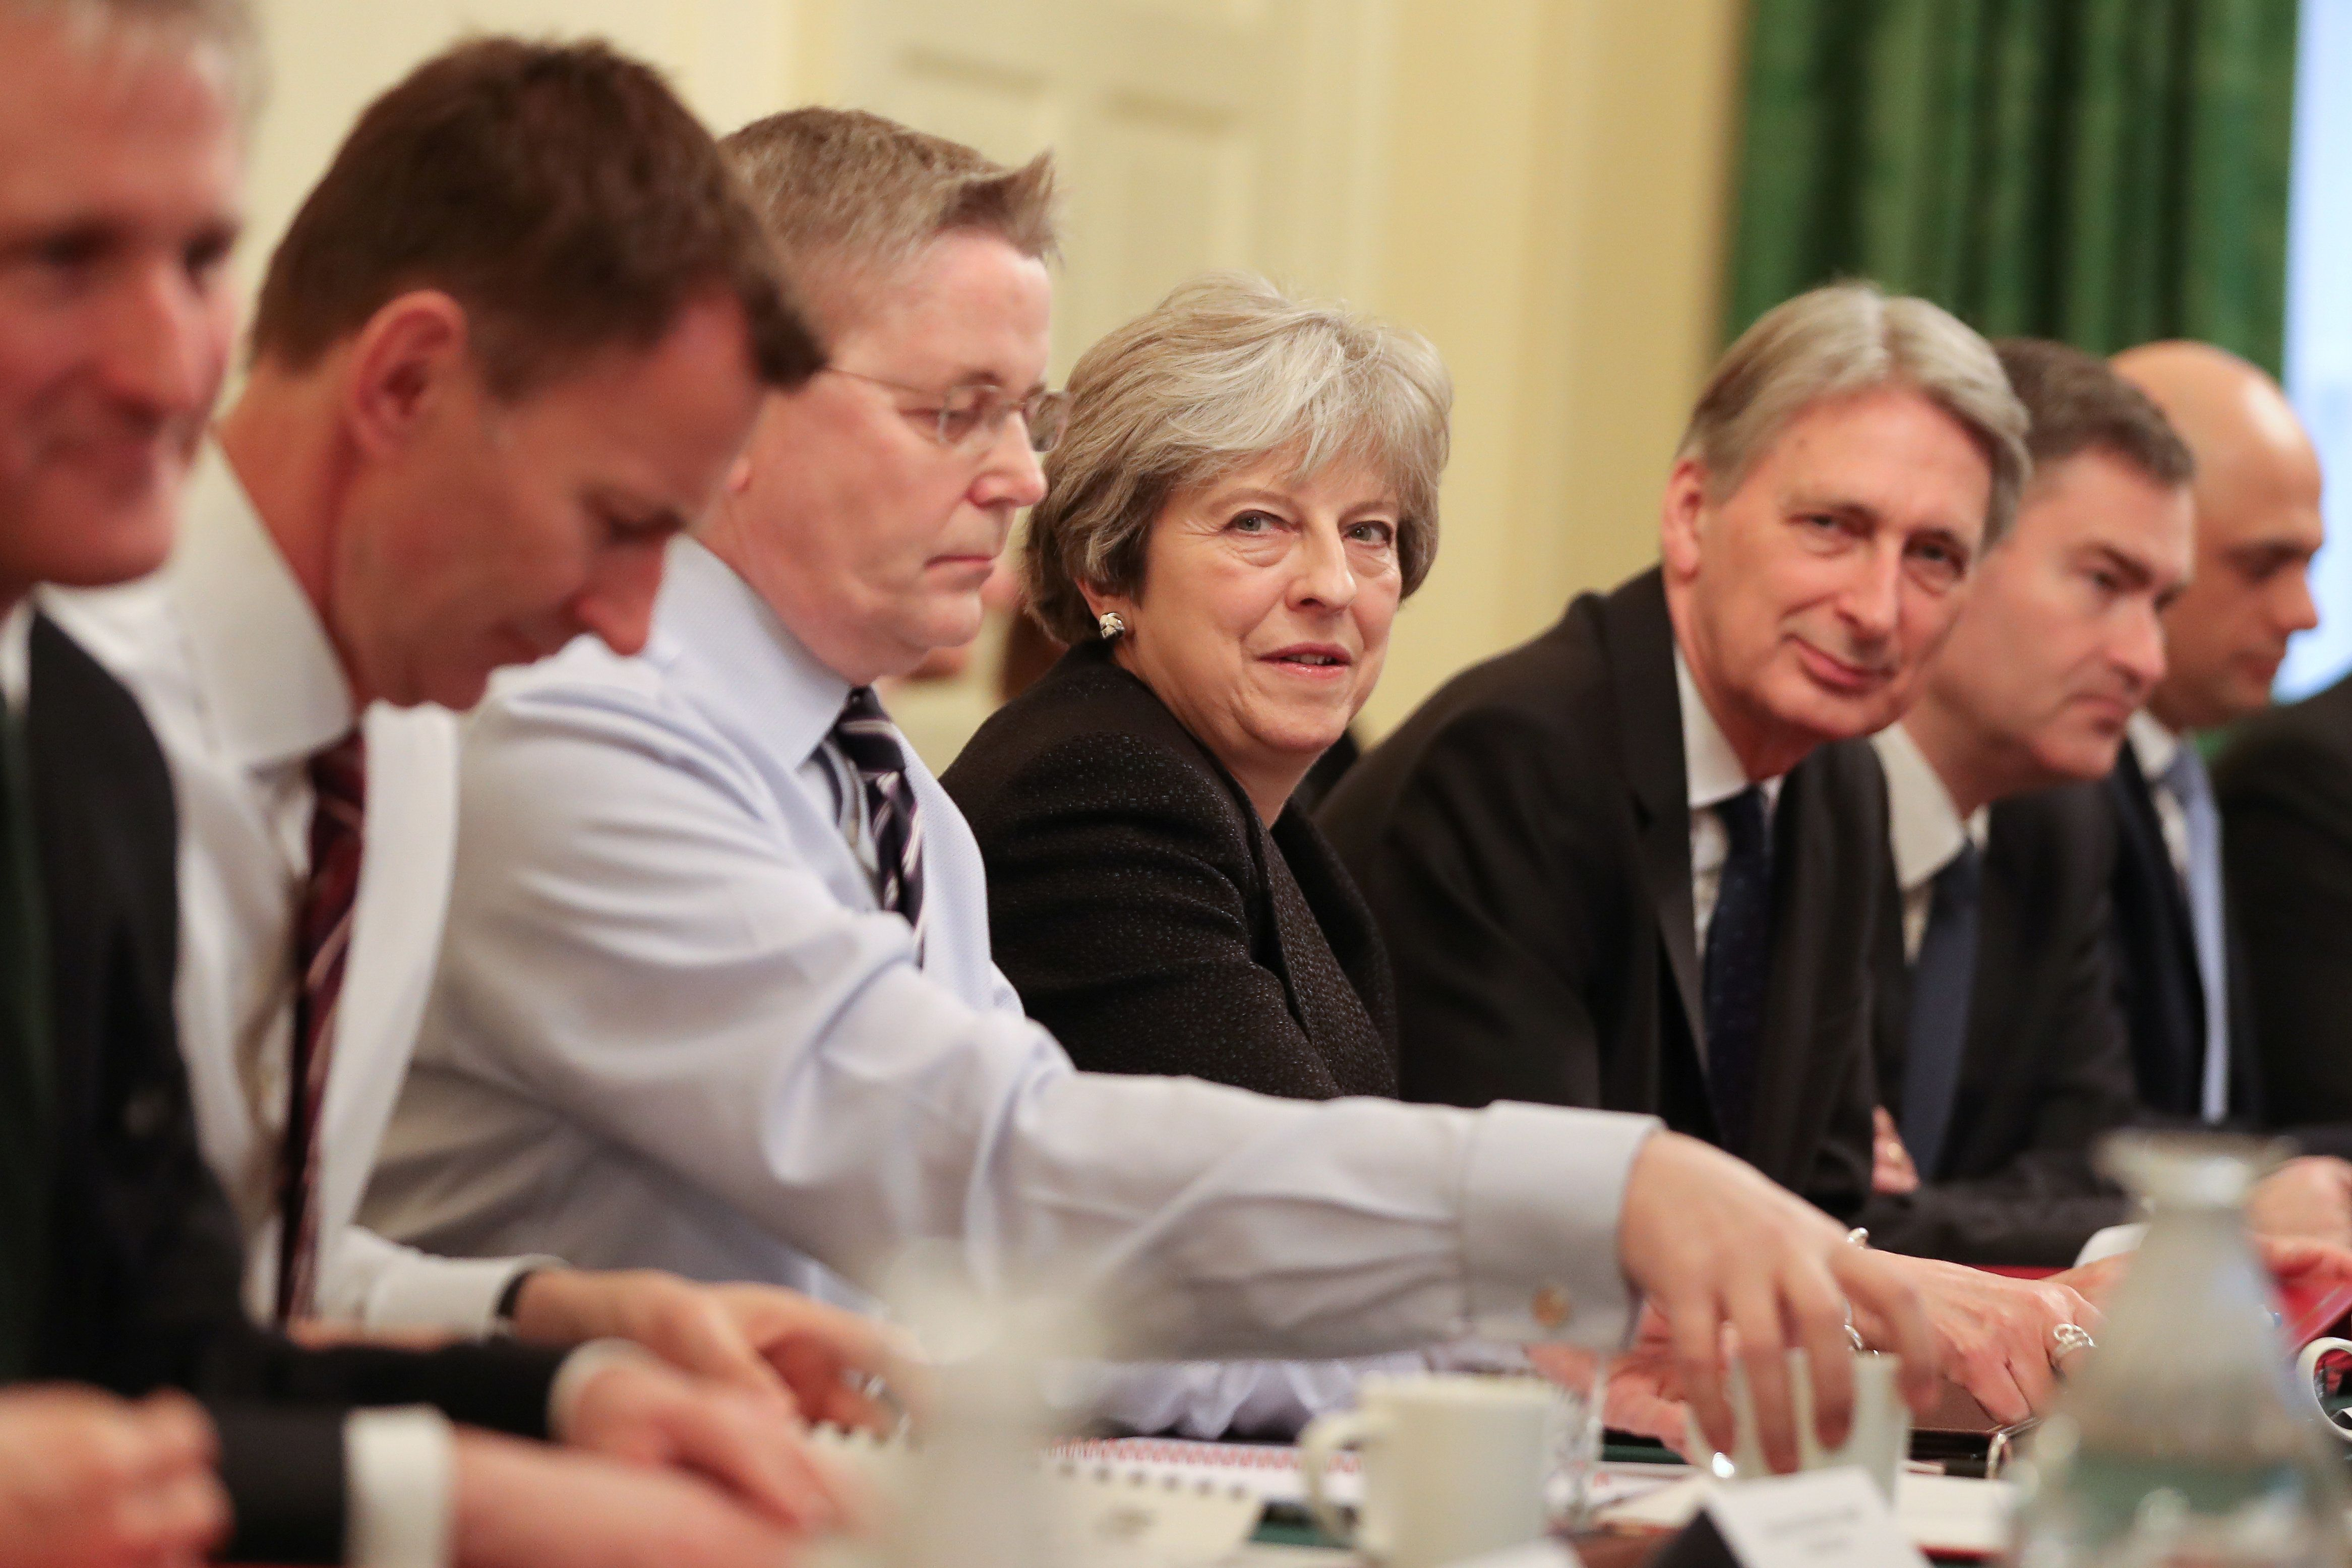 UK Prime Minister Theresa May makes changes to her cabinet